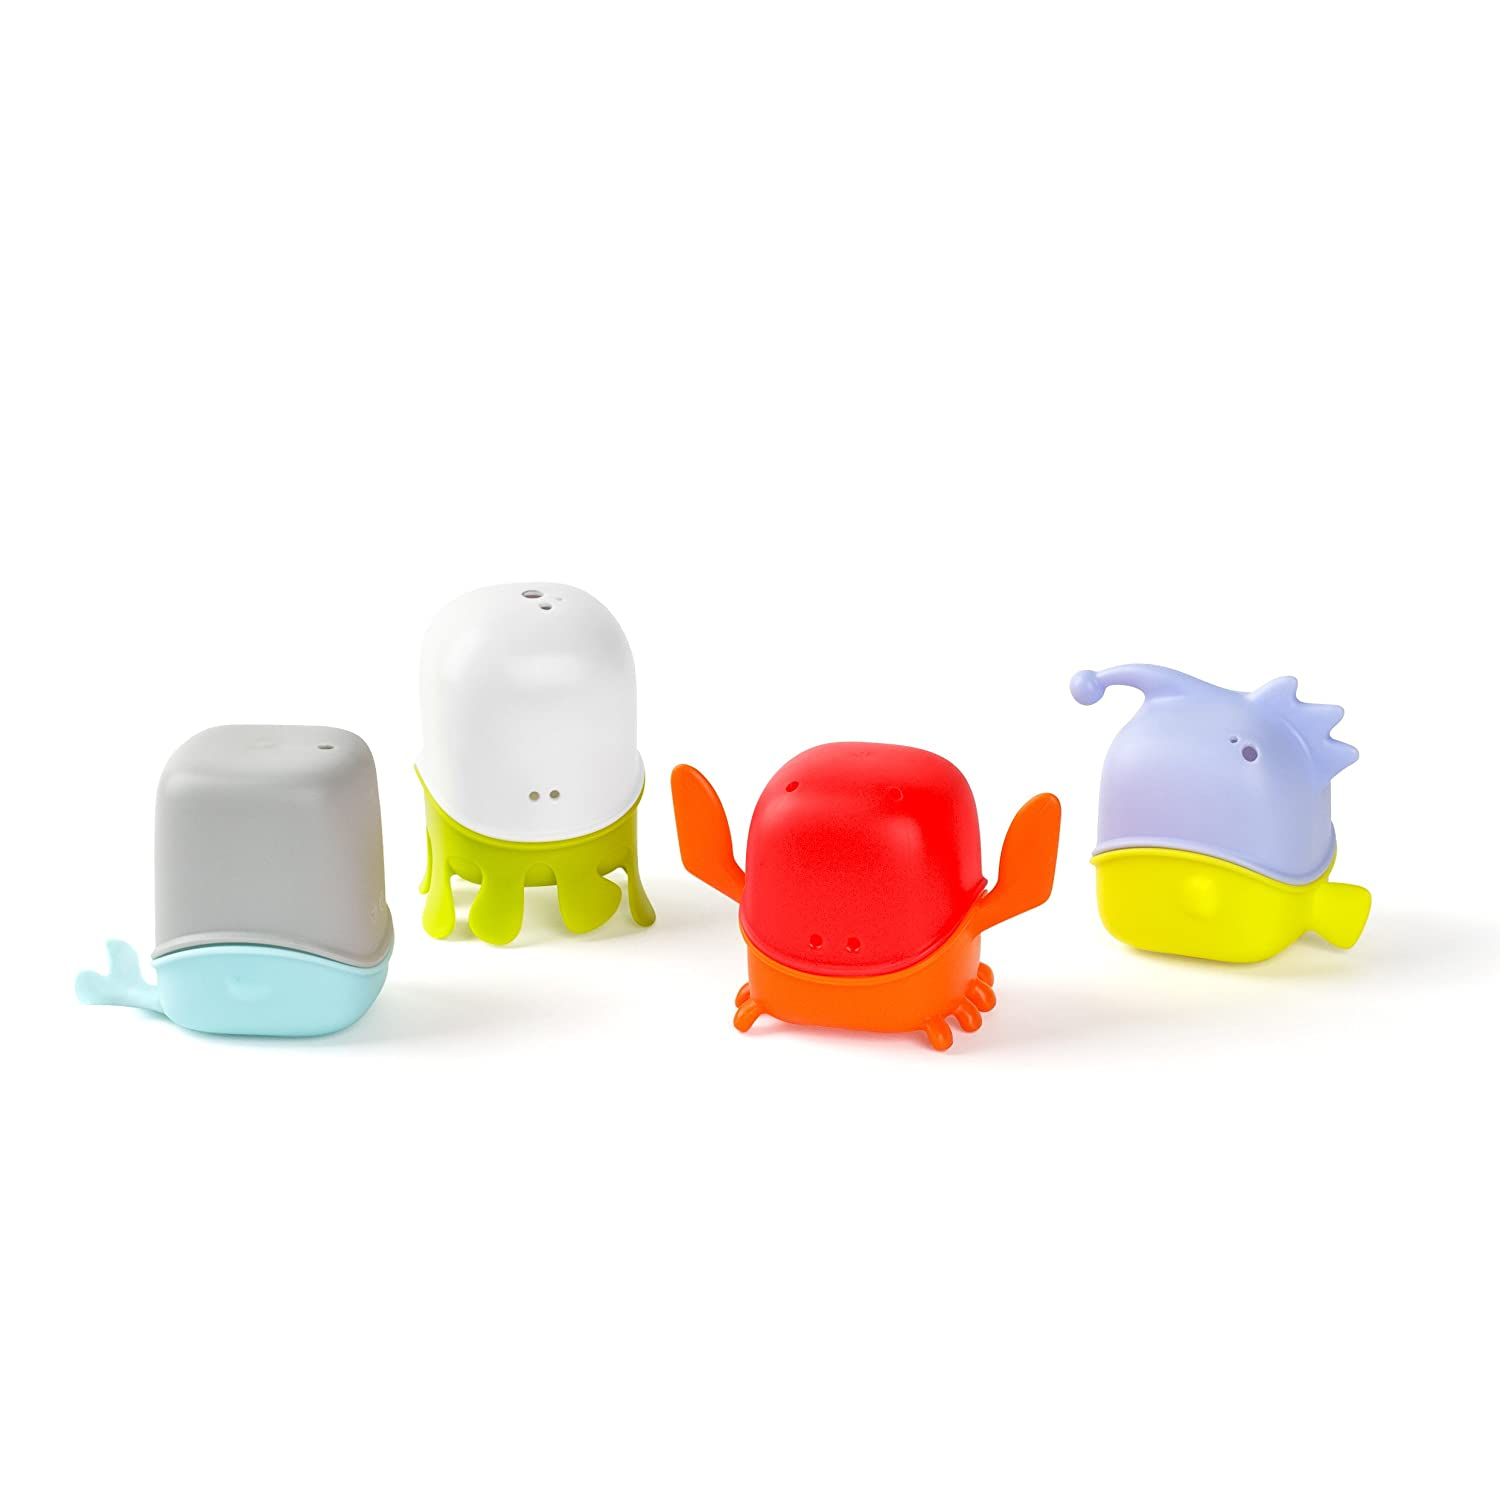 Best Bathtub Toys for Toddlers